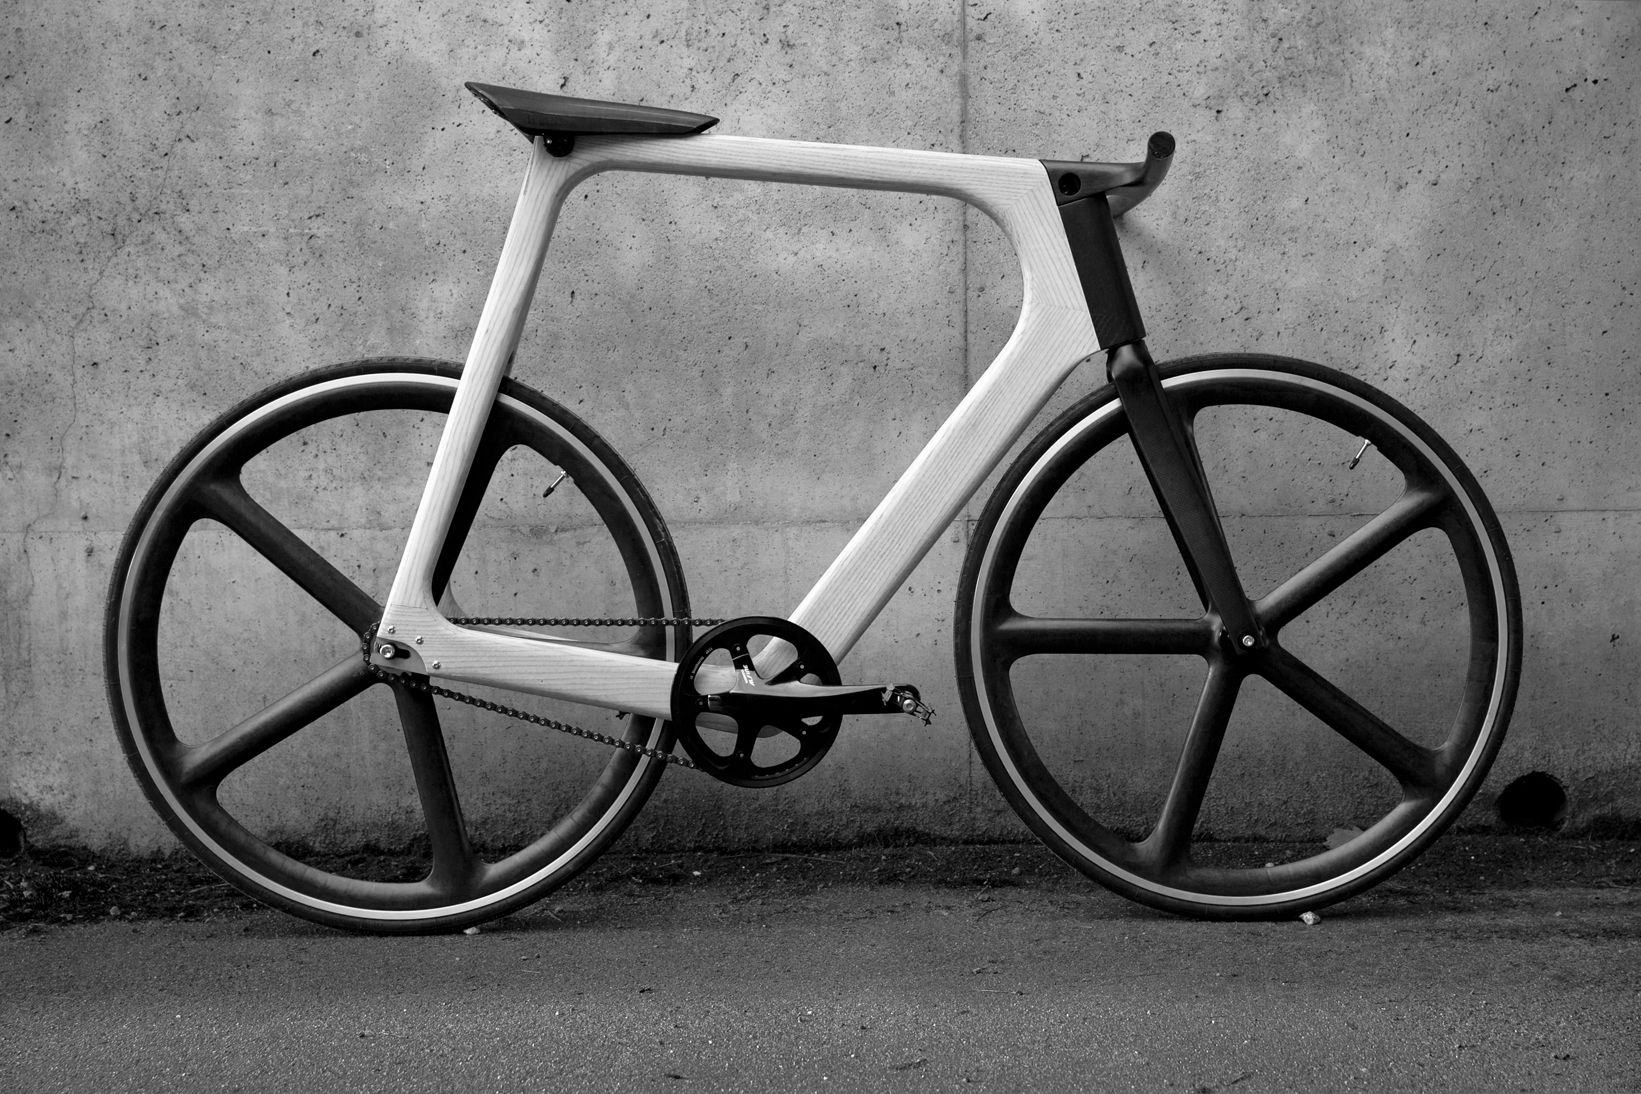 Slender and sleek: Arvak bicycle by French company Keim. Wish it wasn't a fixed gear!